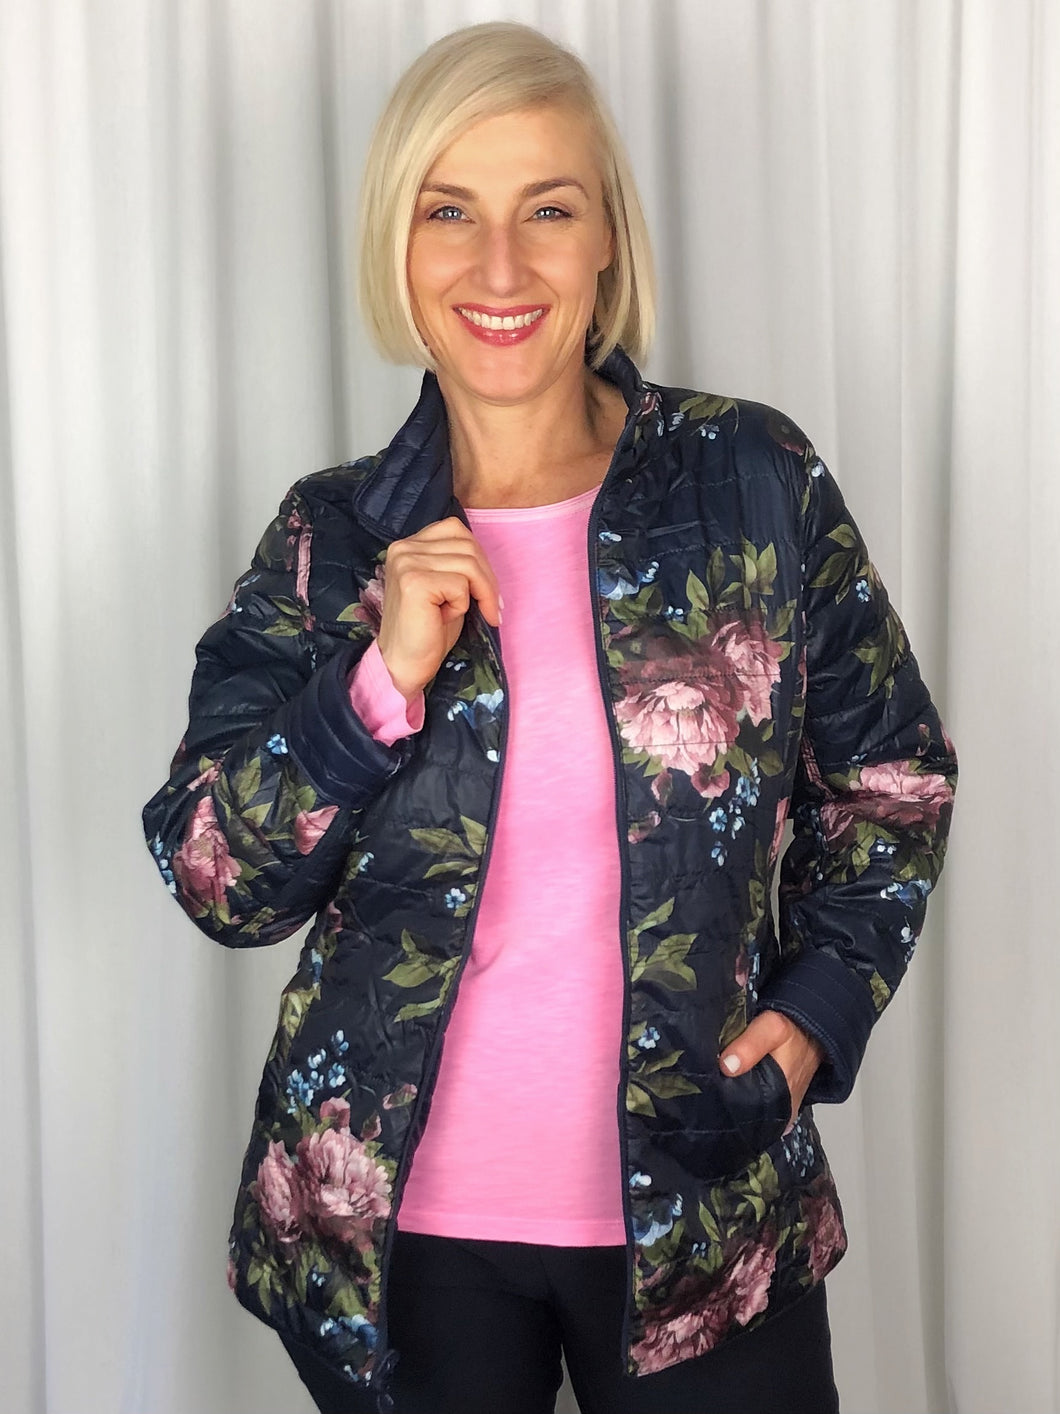 This Reversible Floral Puffer Jacket features double the styling options with a colourful floral design on one side and solid navy on the reverse. It co-ordinates easily with your Autumn/Winter wardrobe by adding a splash of colour underneath. Made from Polyester, it's lightweight and washable.